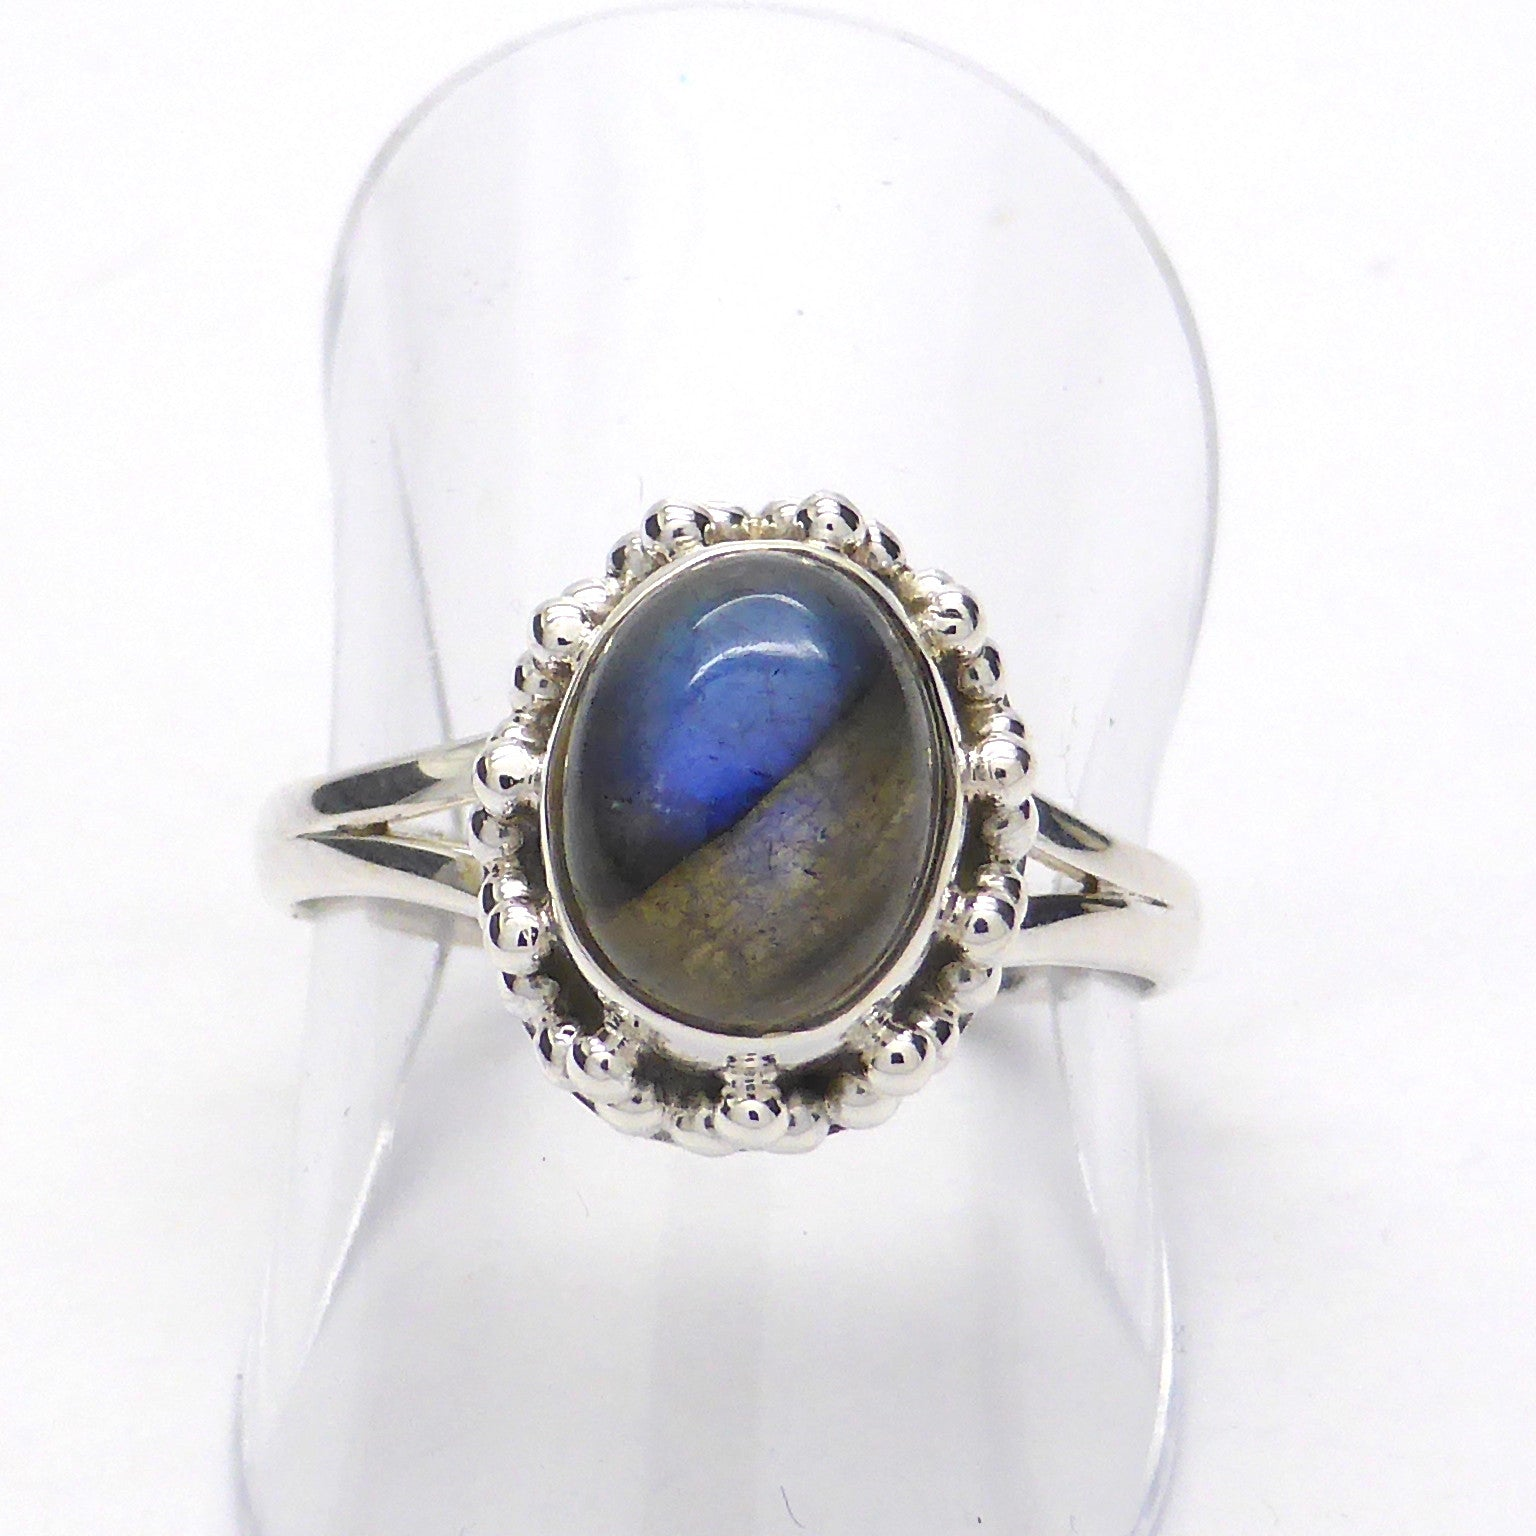 Ring Labradorite | Oval Cabochon | Detailed 925 Sterling Silver | Smaller Style | Size 5,6,7,8,9,10 | Crystal Heart Melbourne Australia since 1986